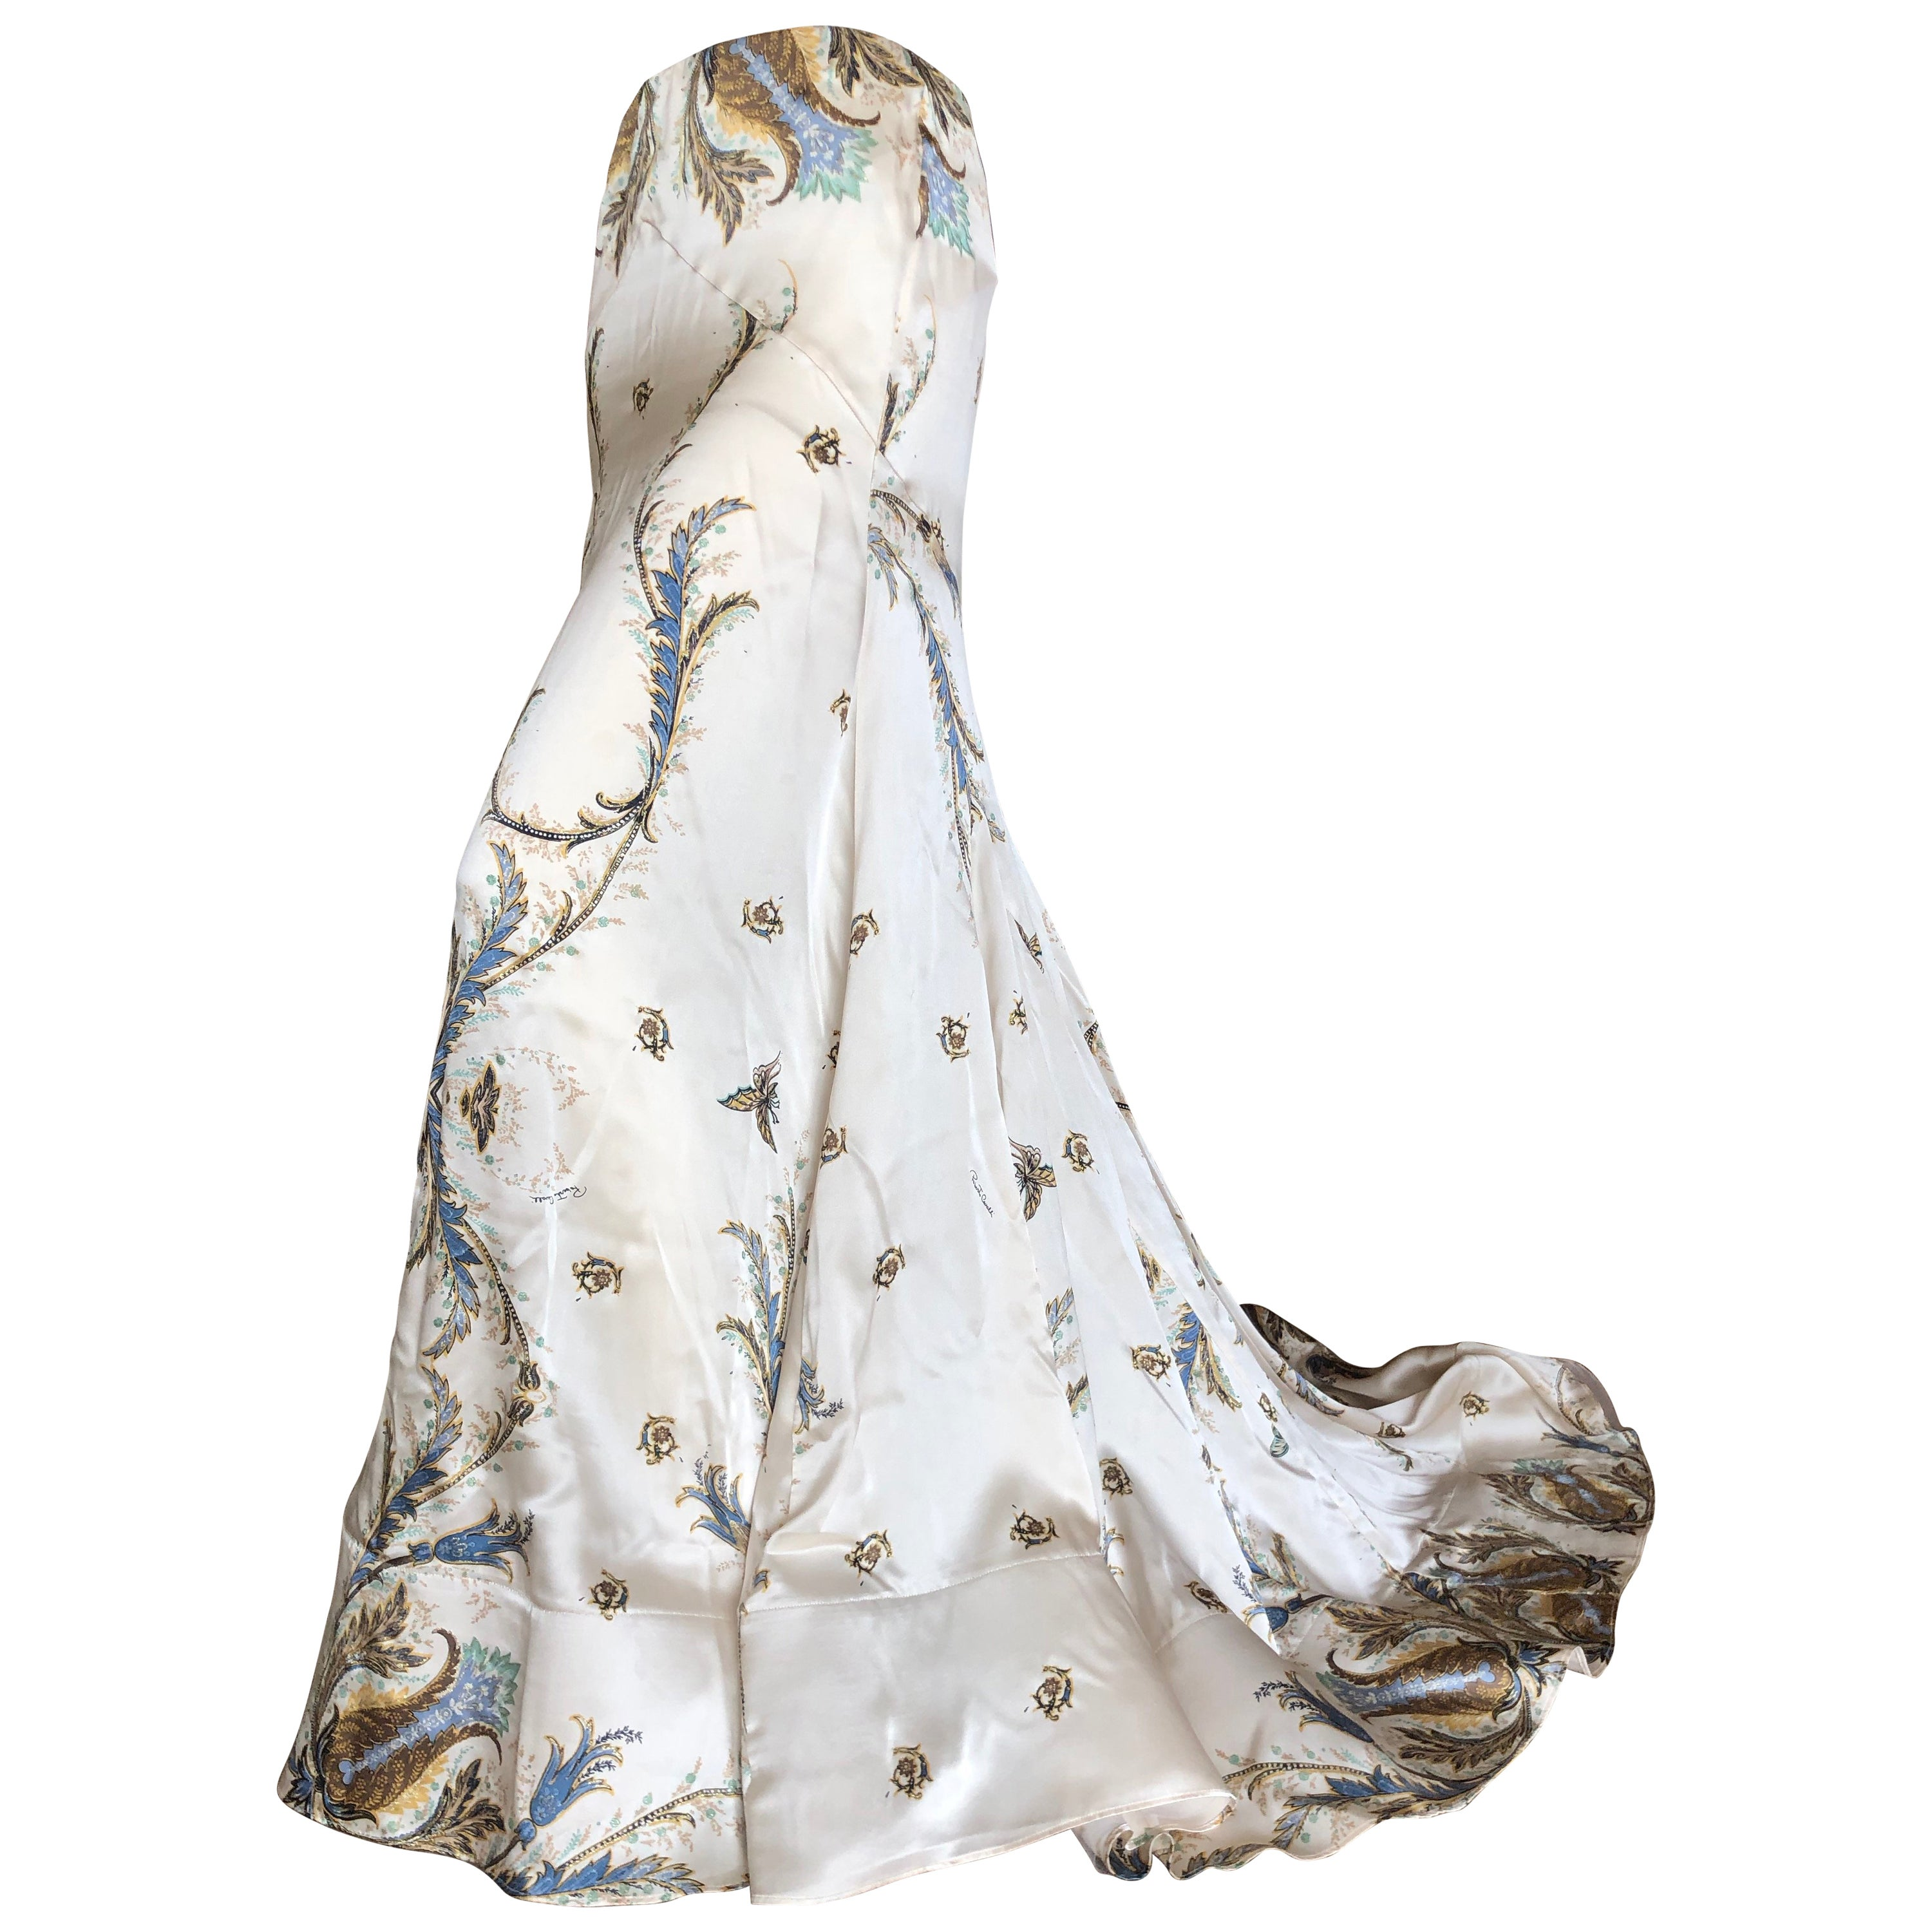 ff0420ee18 Roberto Cavalli Vintage Silk Ball Skirt with Long Train and Horsehair Hem  at 1stdibs